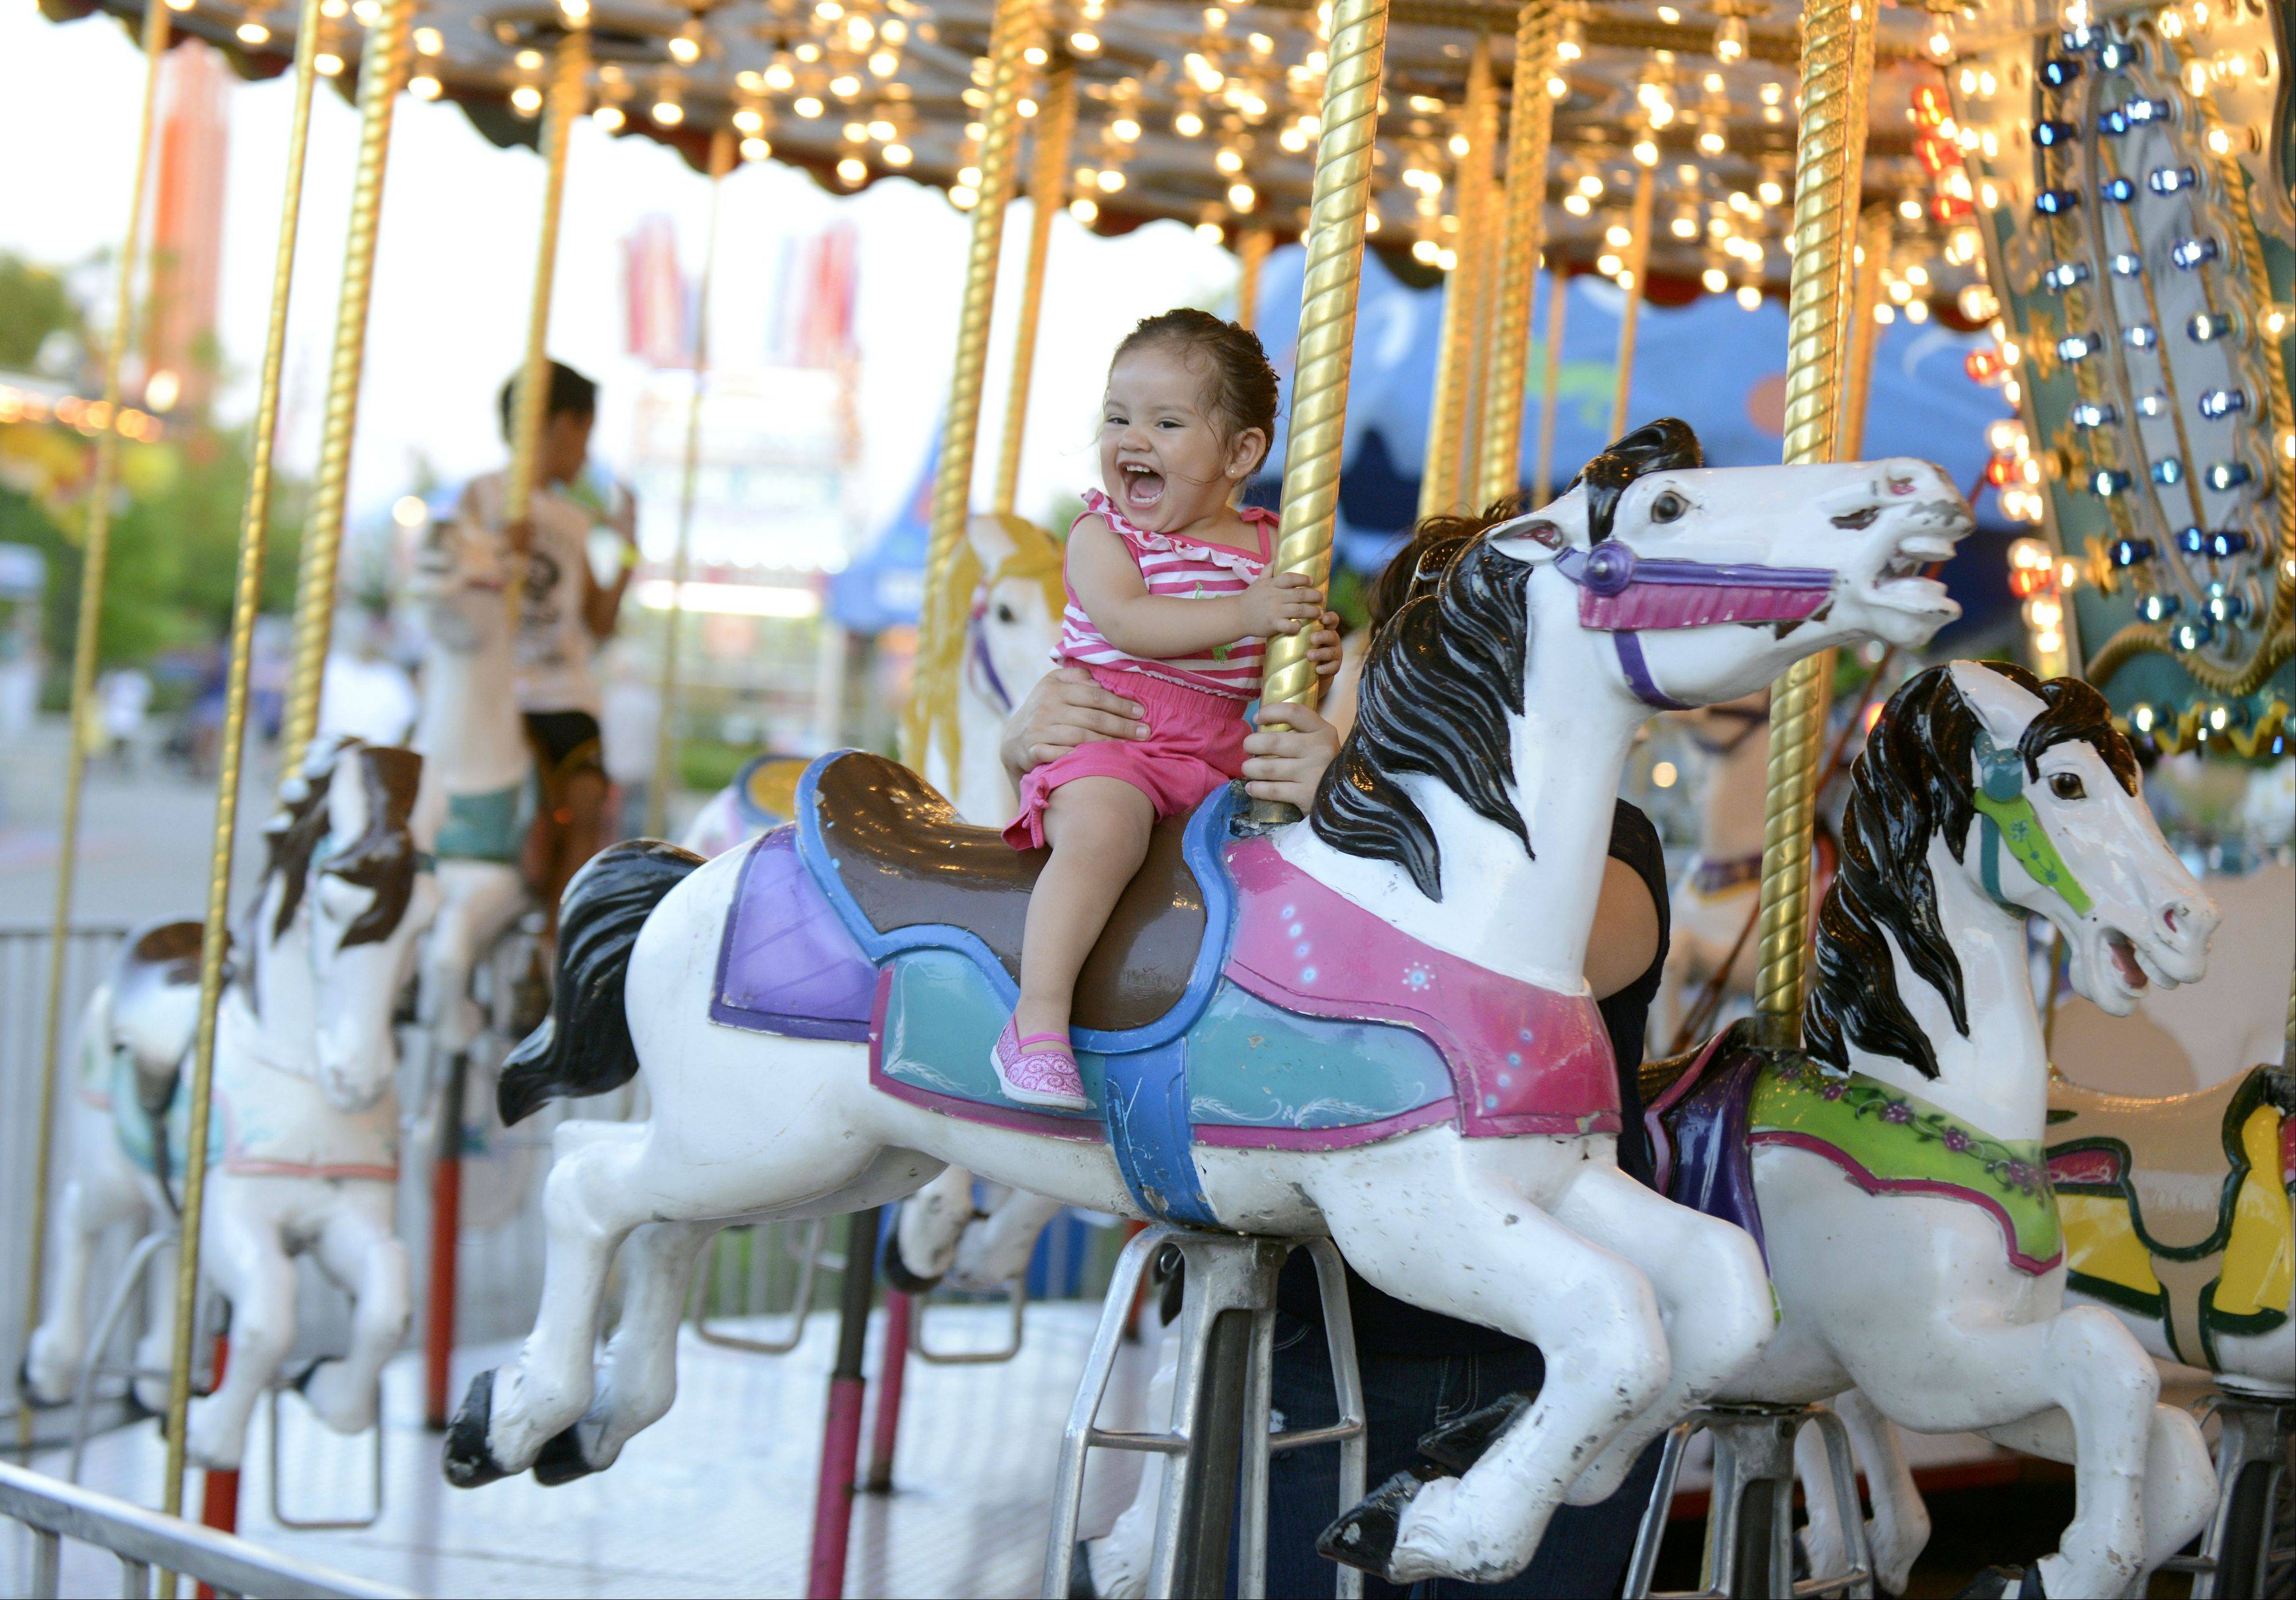 Leah Cruz, 18 months, of Elgin squeals with delight after seeing her father while she and her mother, Janessa, (unseen, holding her on) take a ride on the Merry-go-round at the Kane County Fair in St. Charles on Wednesday, July 17.